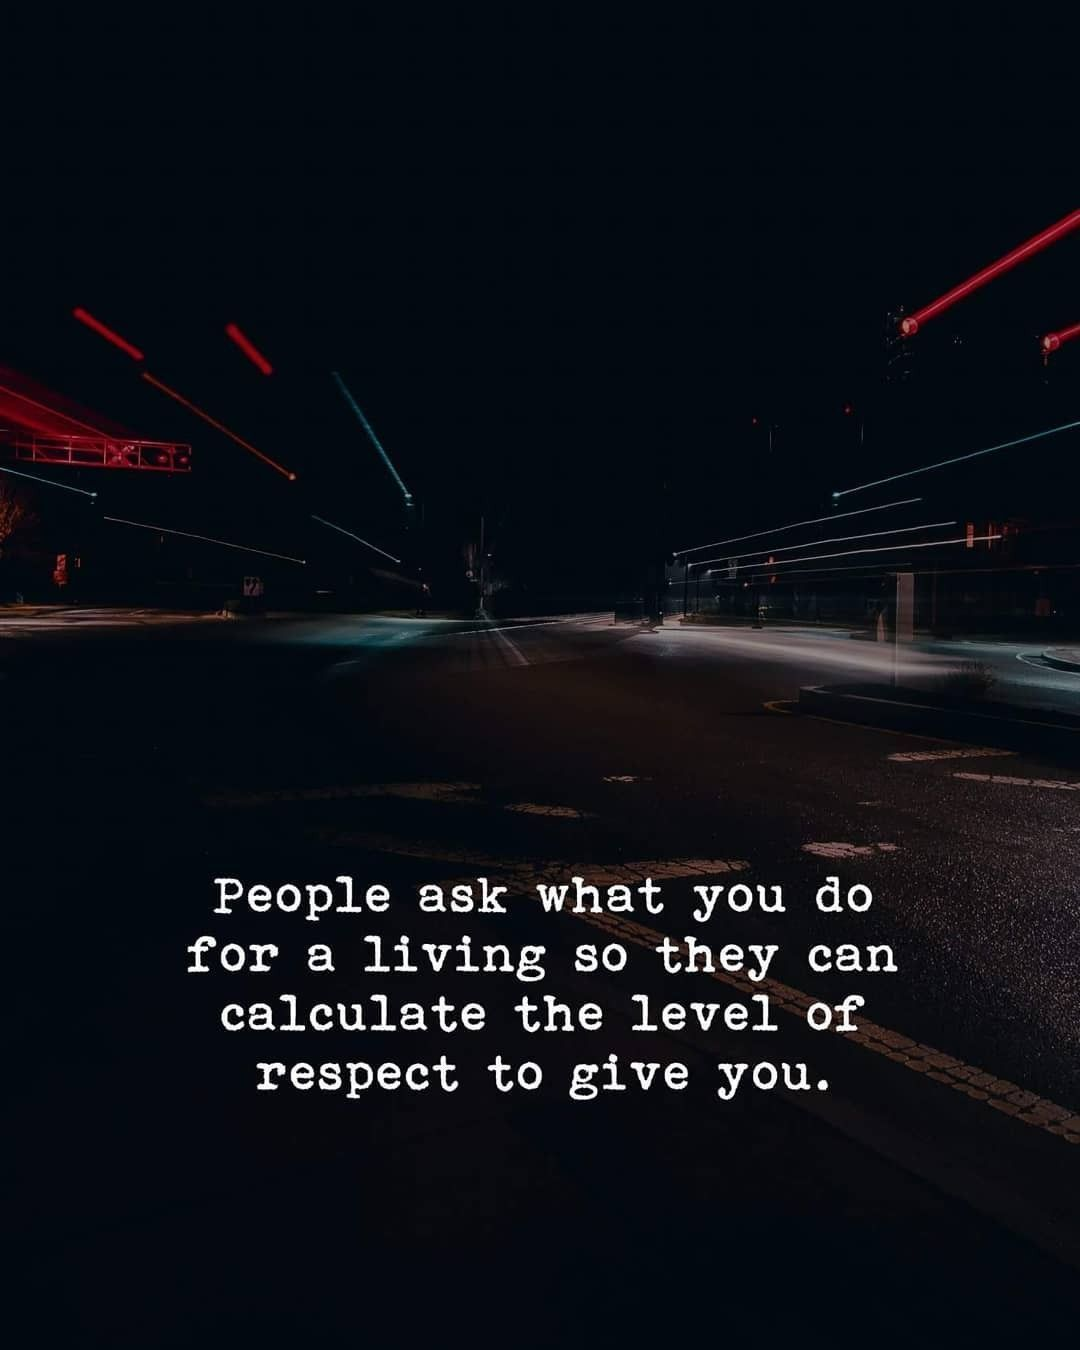 Judge People By How They Treat Others Not By Where They Work And